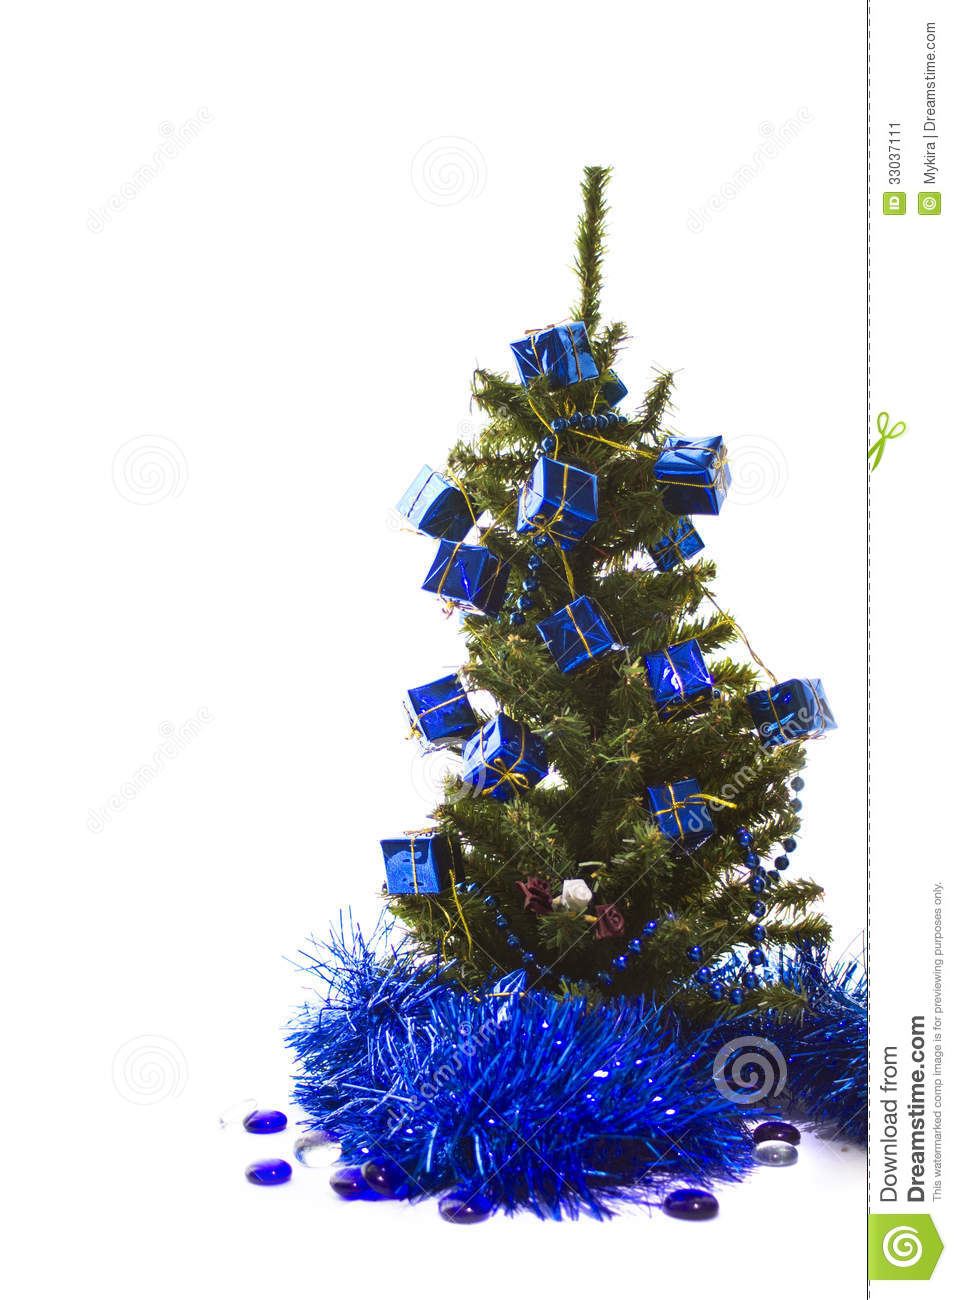 Blue christmas trees decorating ideas - Blue Christmas Isolated Tree White Cold Winter Section Symbol Greeting Decoration